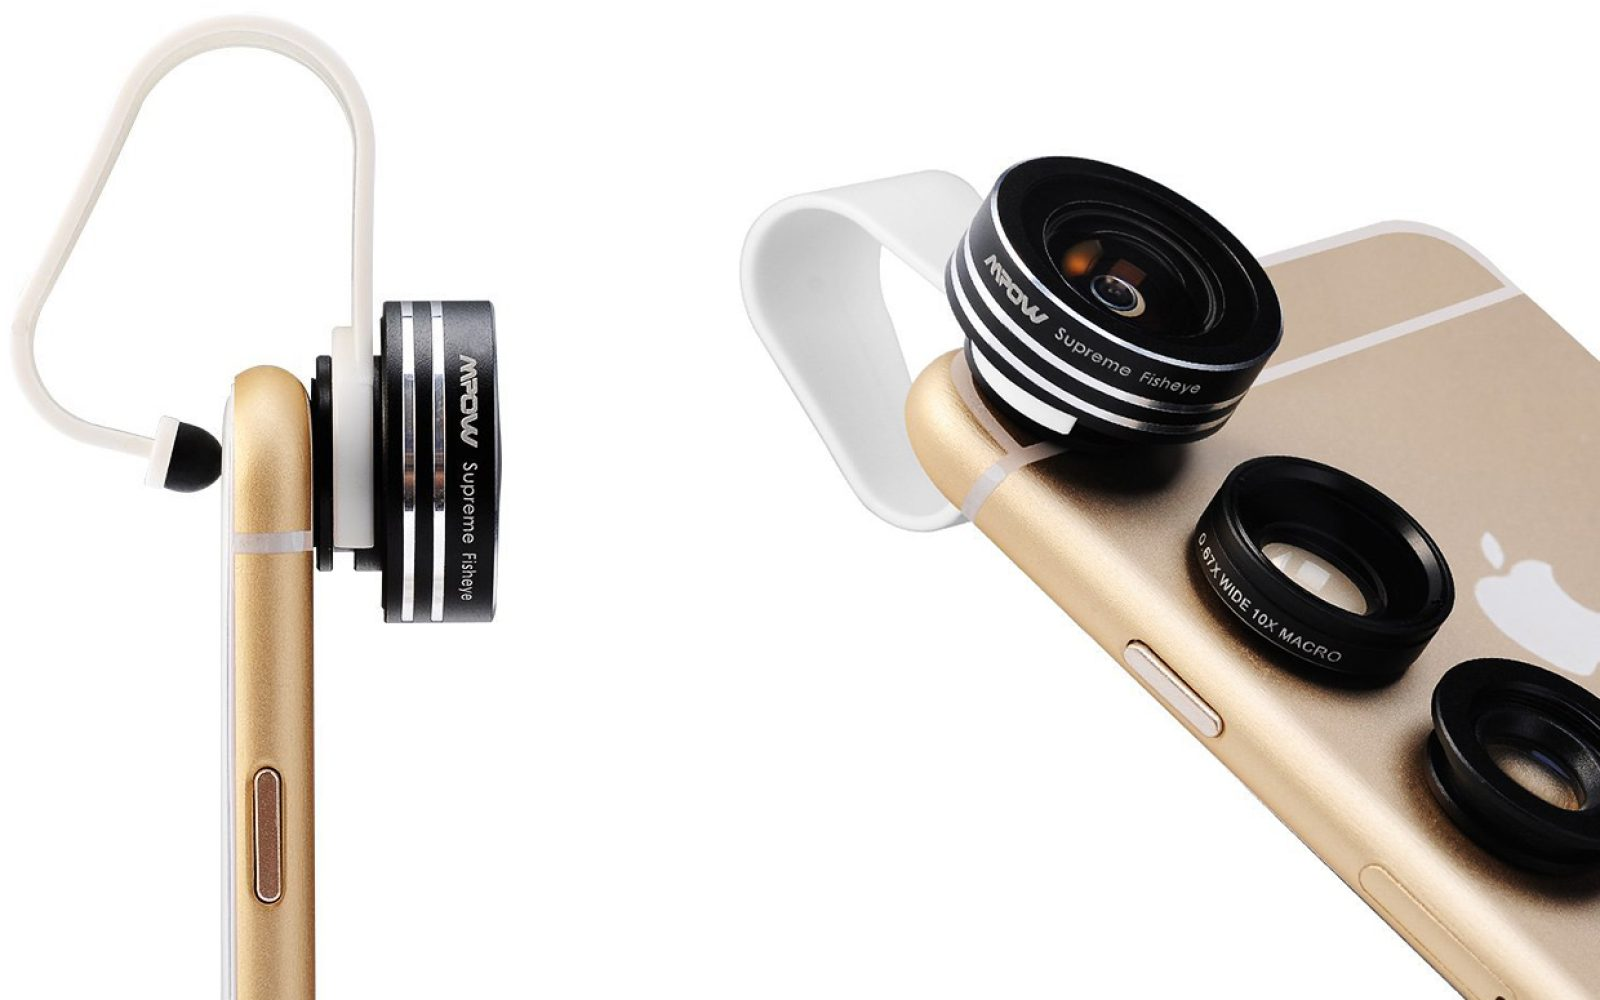 Mpow's best selling 3-in-1 iPhone 6/s & Android lens kit for $10 Prime shipped (Orig. $17)